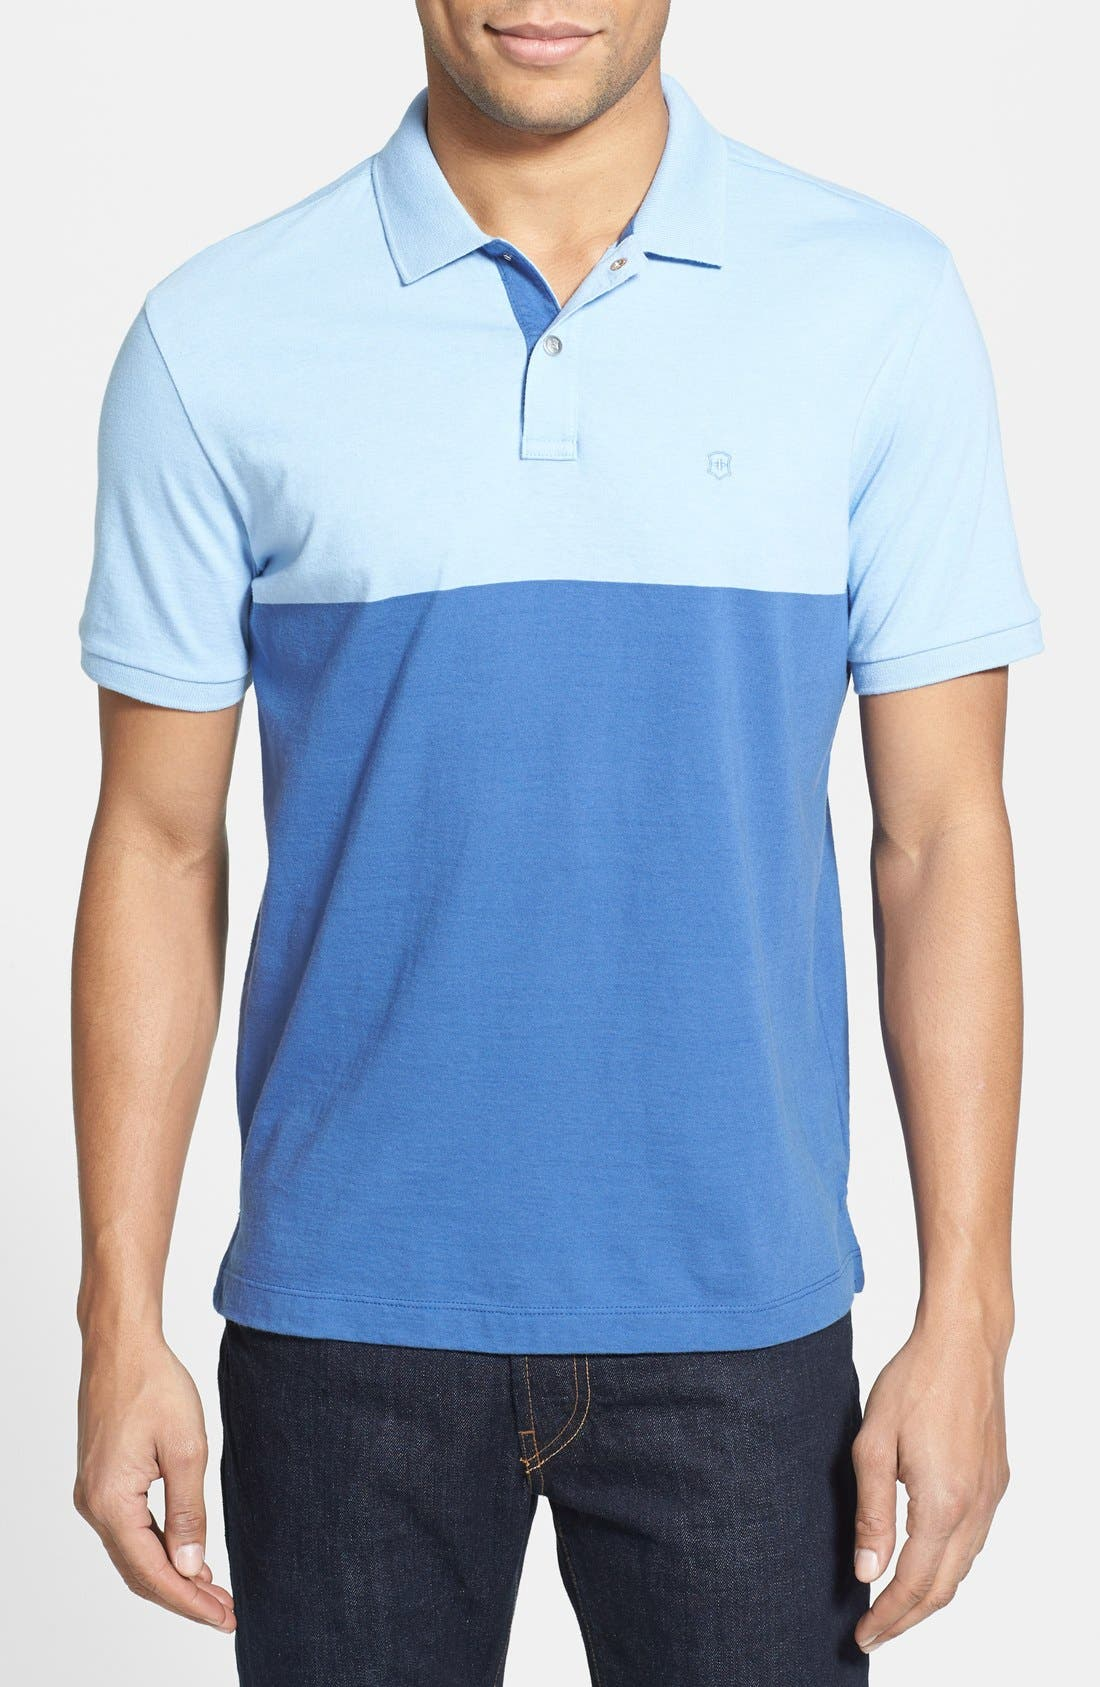 Main Image - Victorinox Swiss Army® 'Aster' Tailored Fit Colorblock Polo